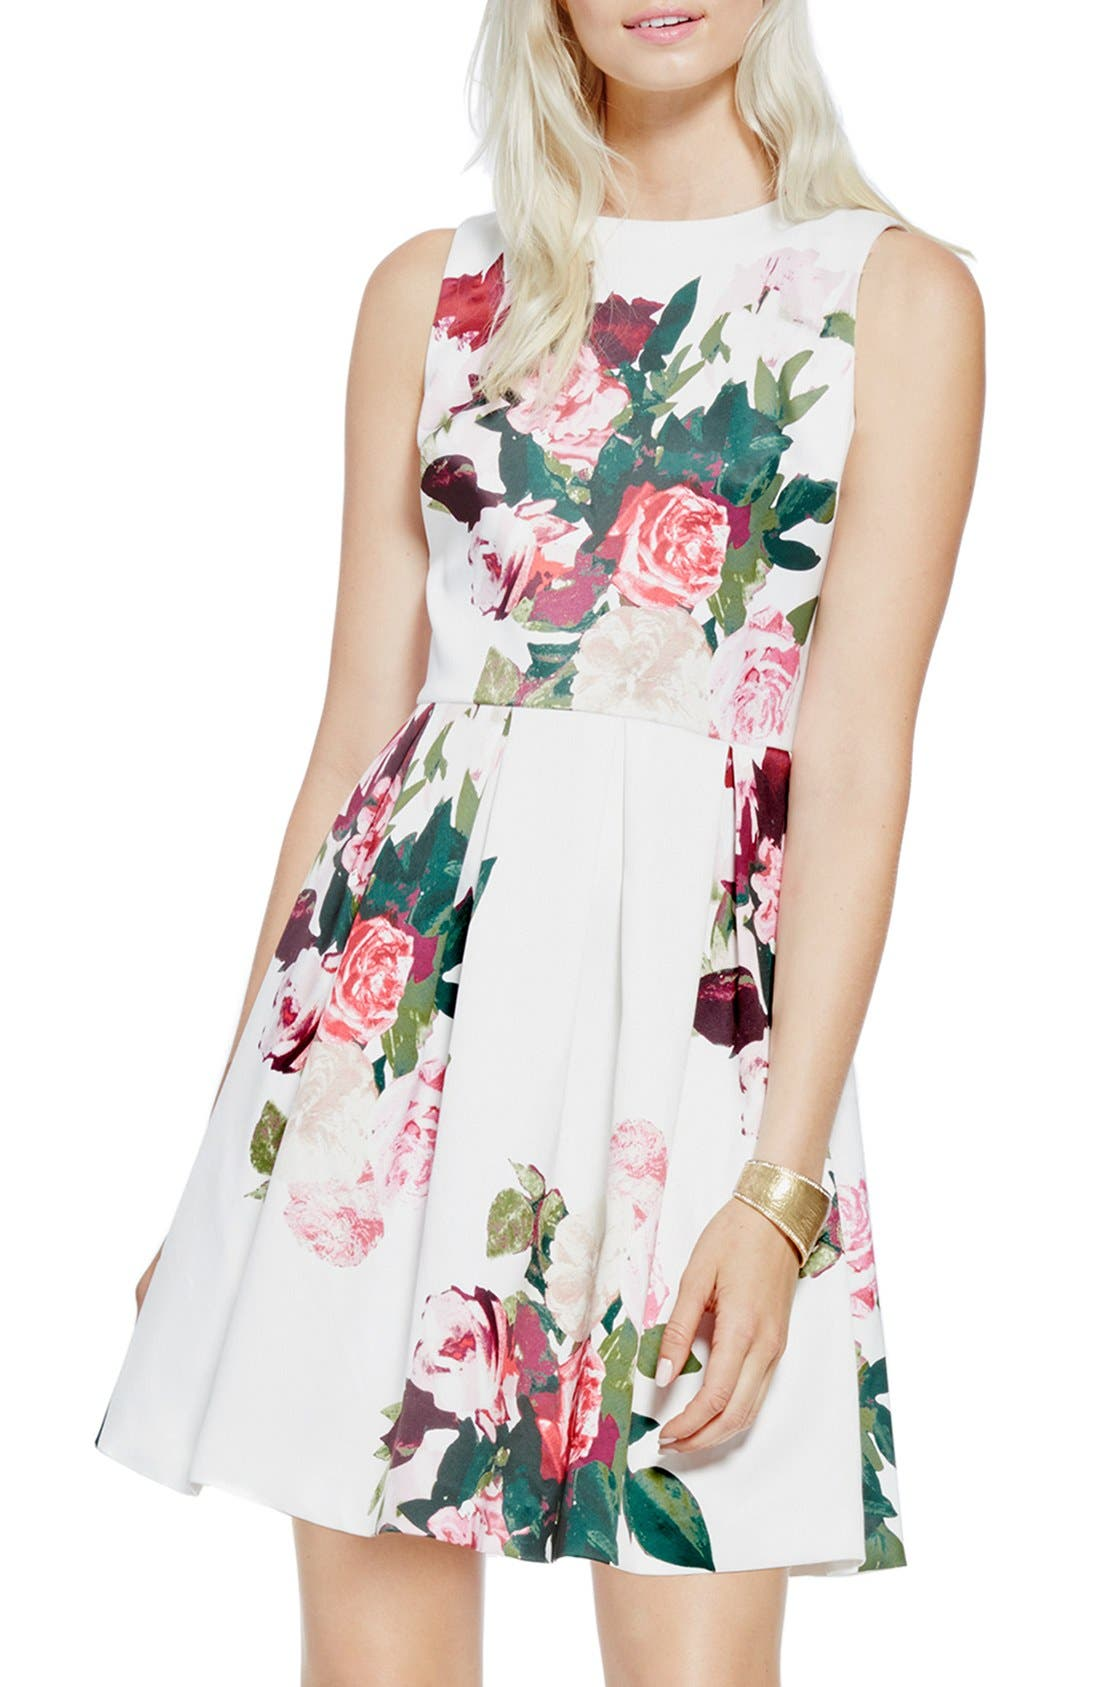 Alternate Image 1 Selected - Vince Camuto 'Rose Bouquet' Fit & Flare Dress